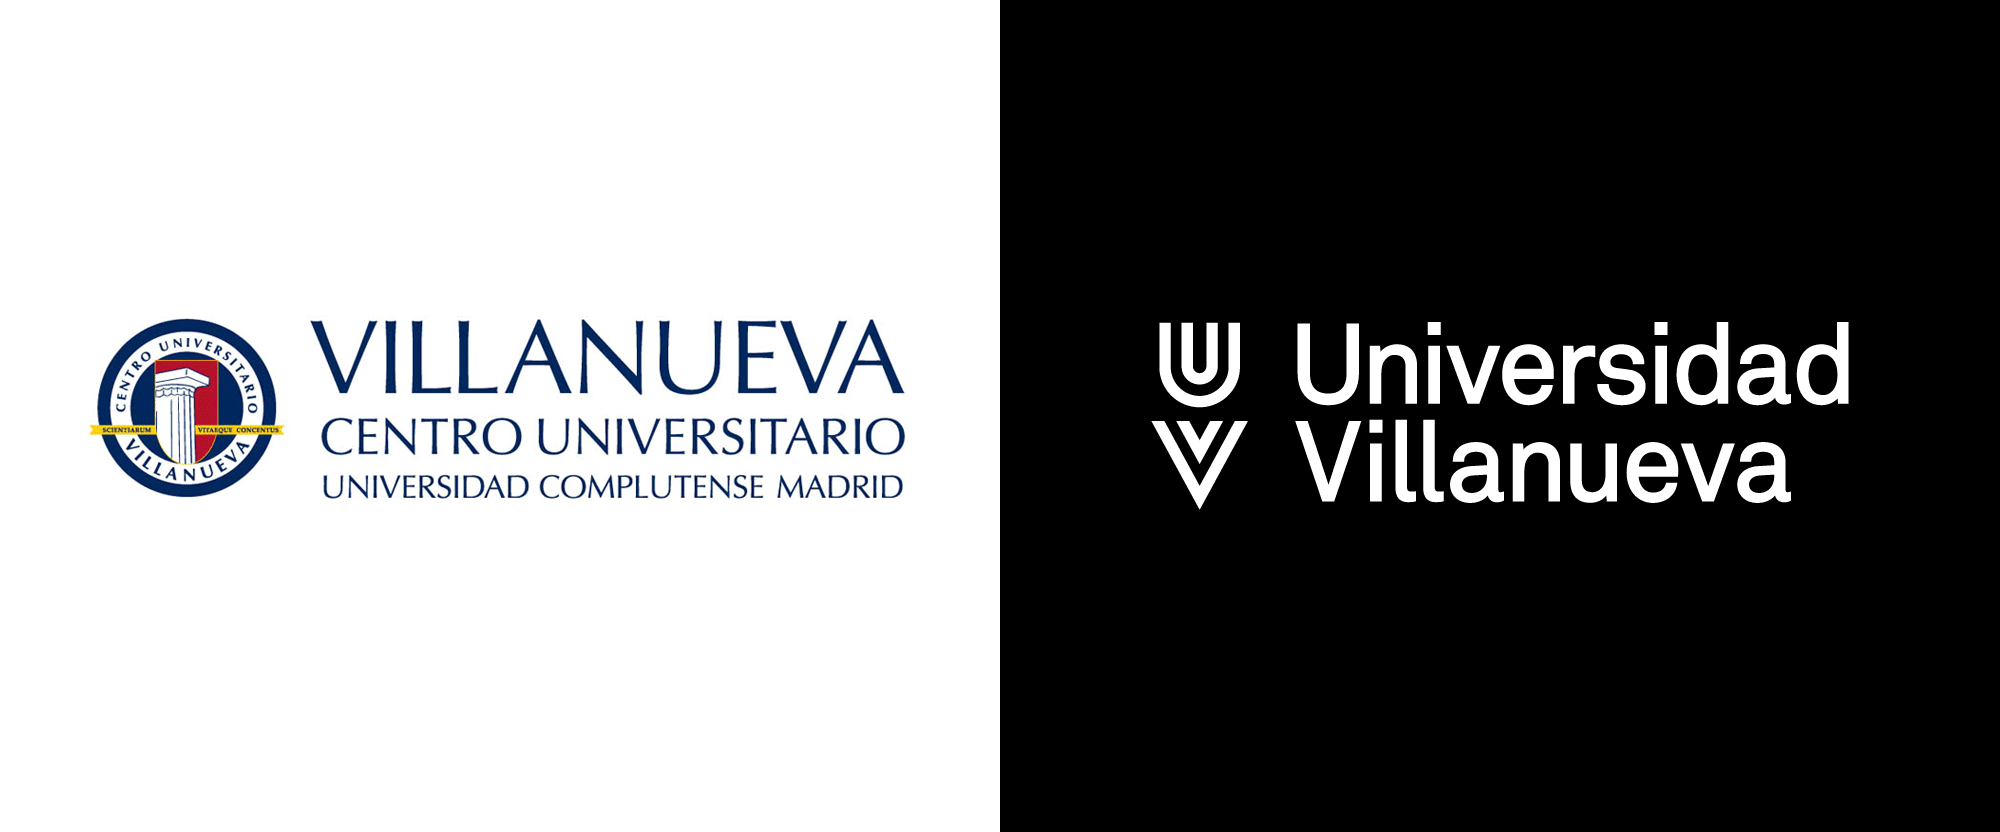 New Logo and Identity for Universidad Villanueva by KNOM